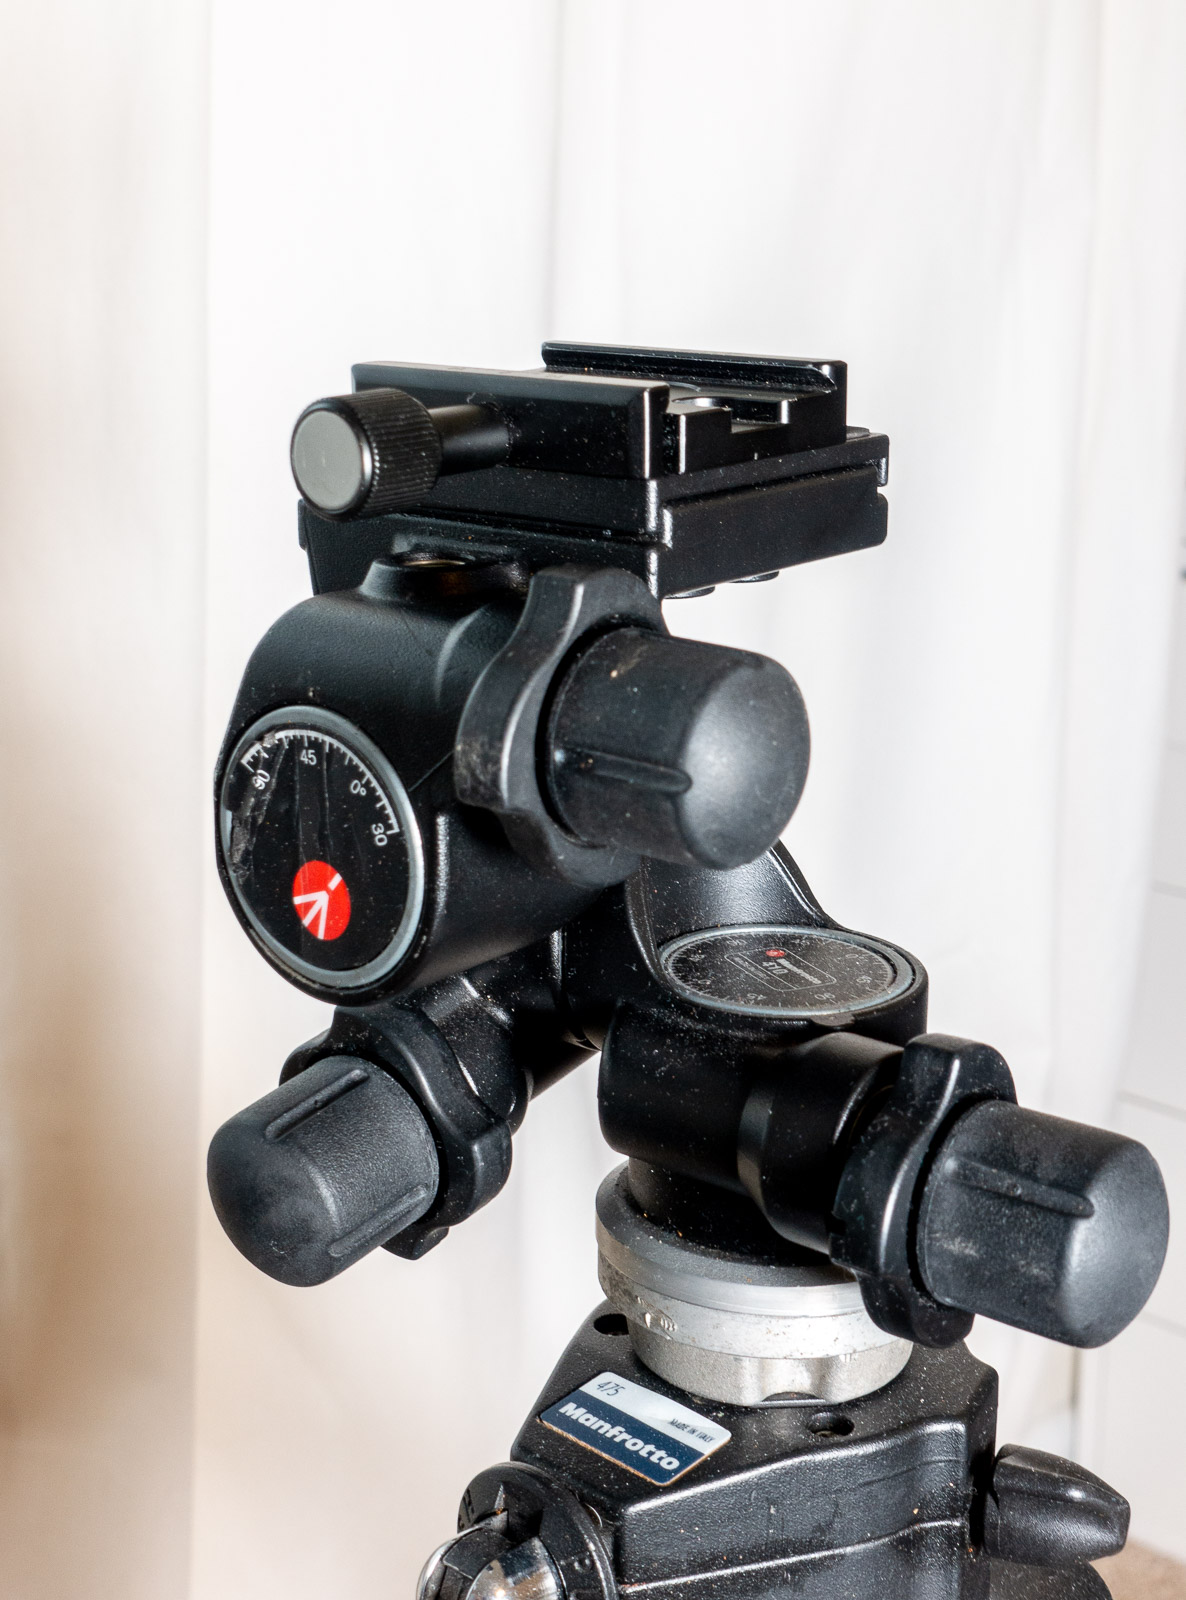 Finished DIY Arca Swiss compatible clamp on the Manfrotto 410 Junior geared tripod head, for use with an L-Bracket.